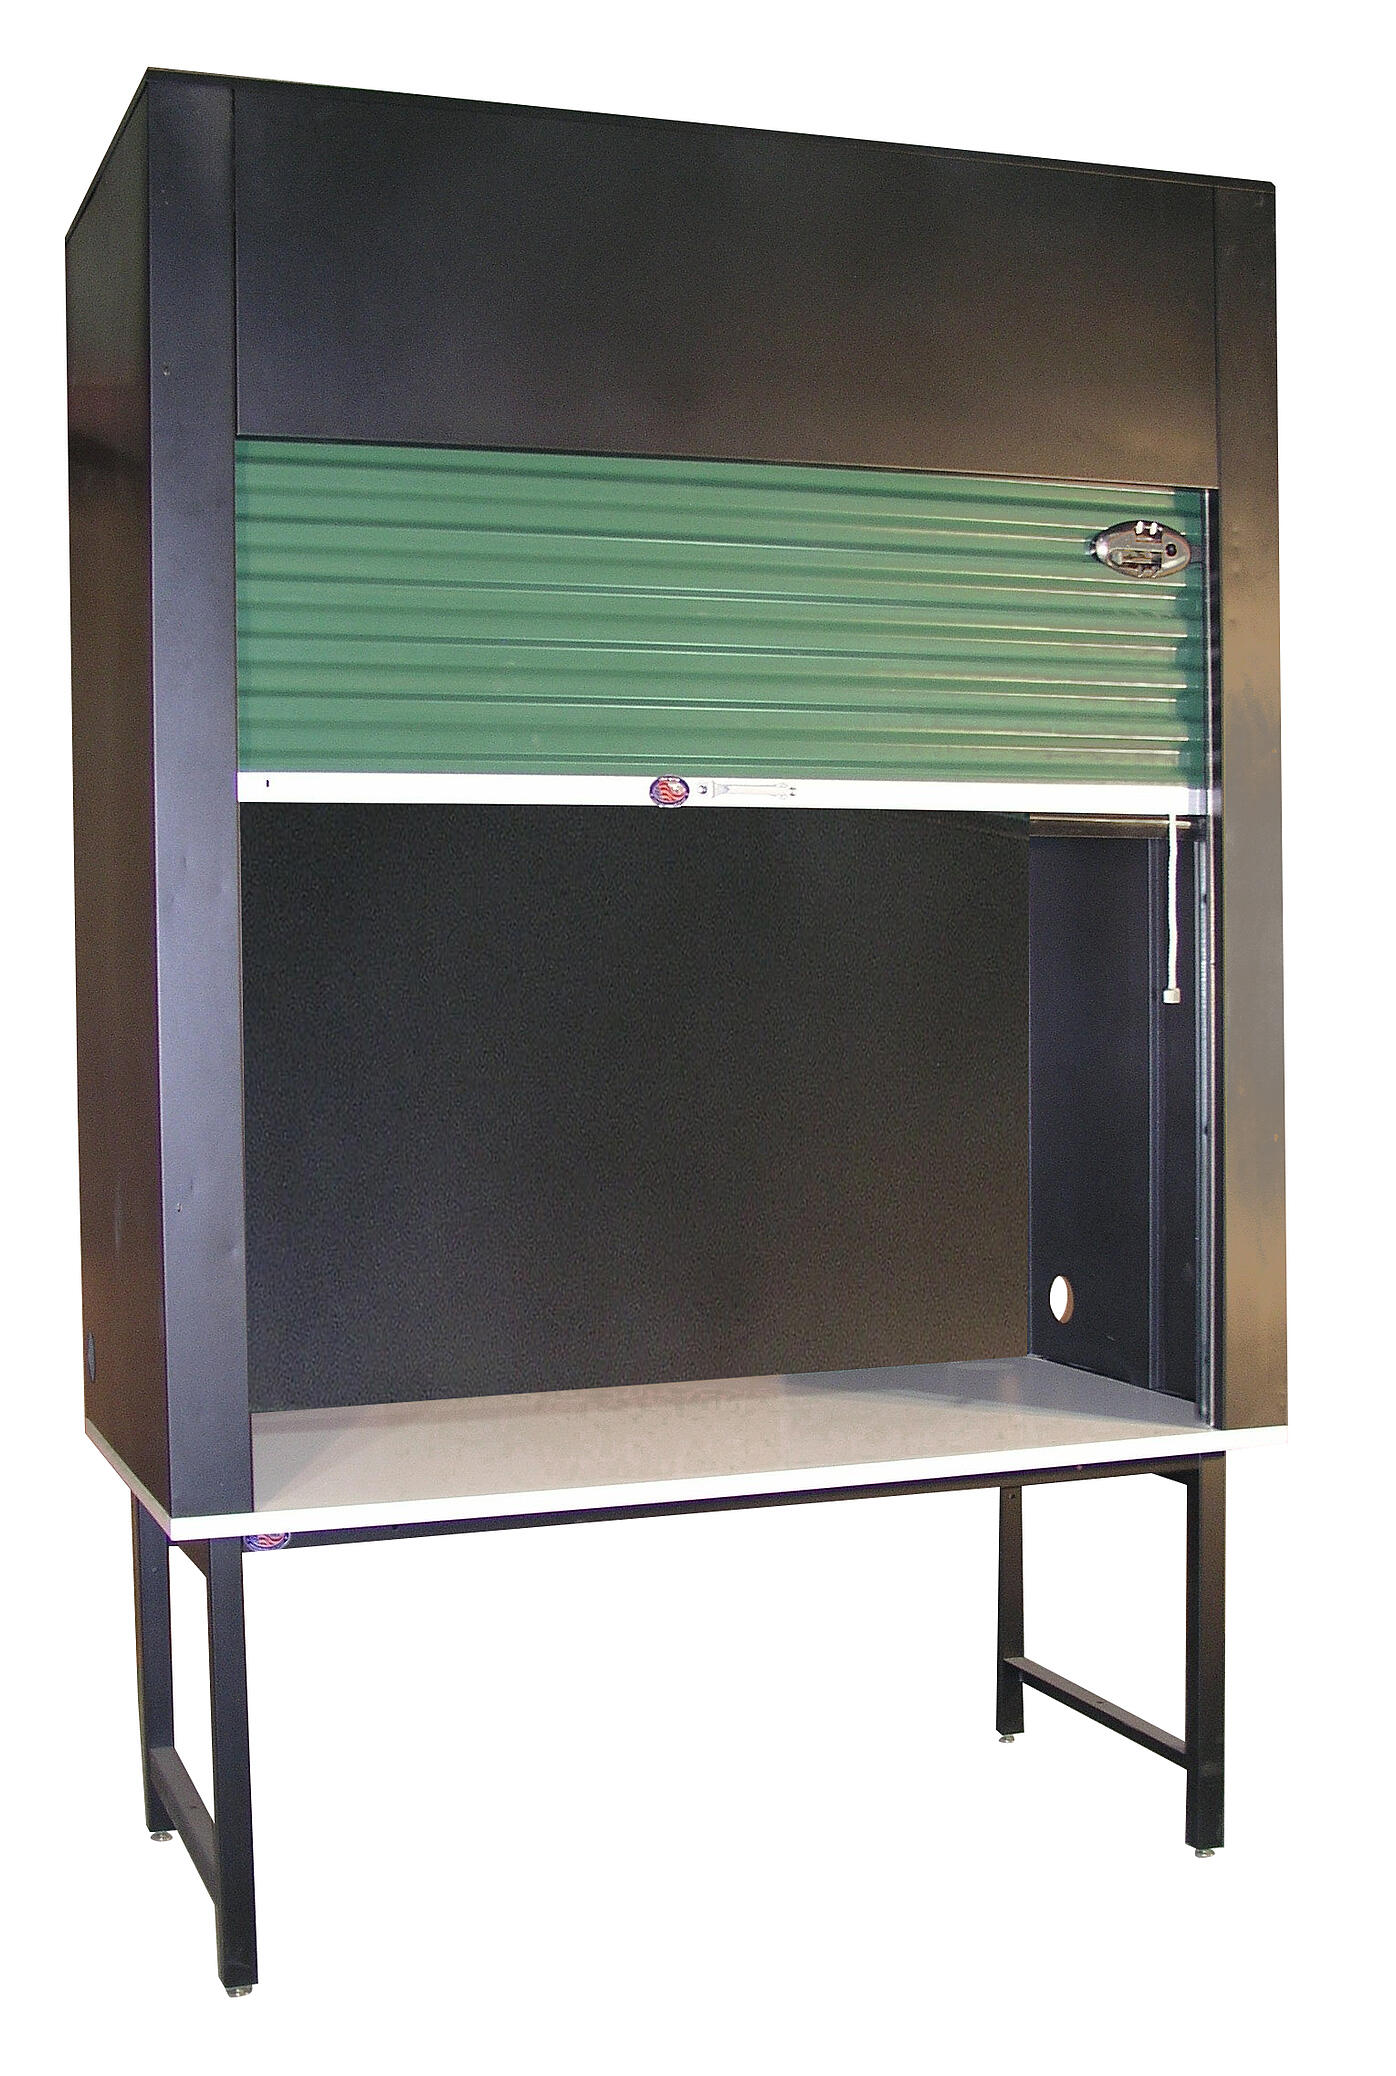 Enclosed storage workbench